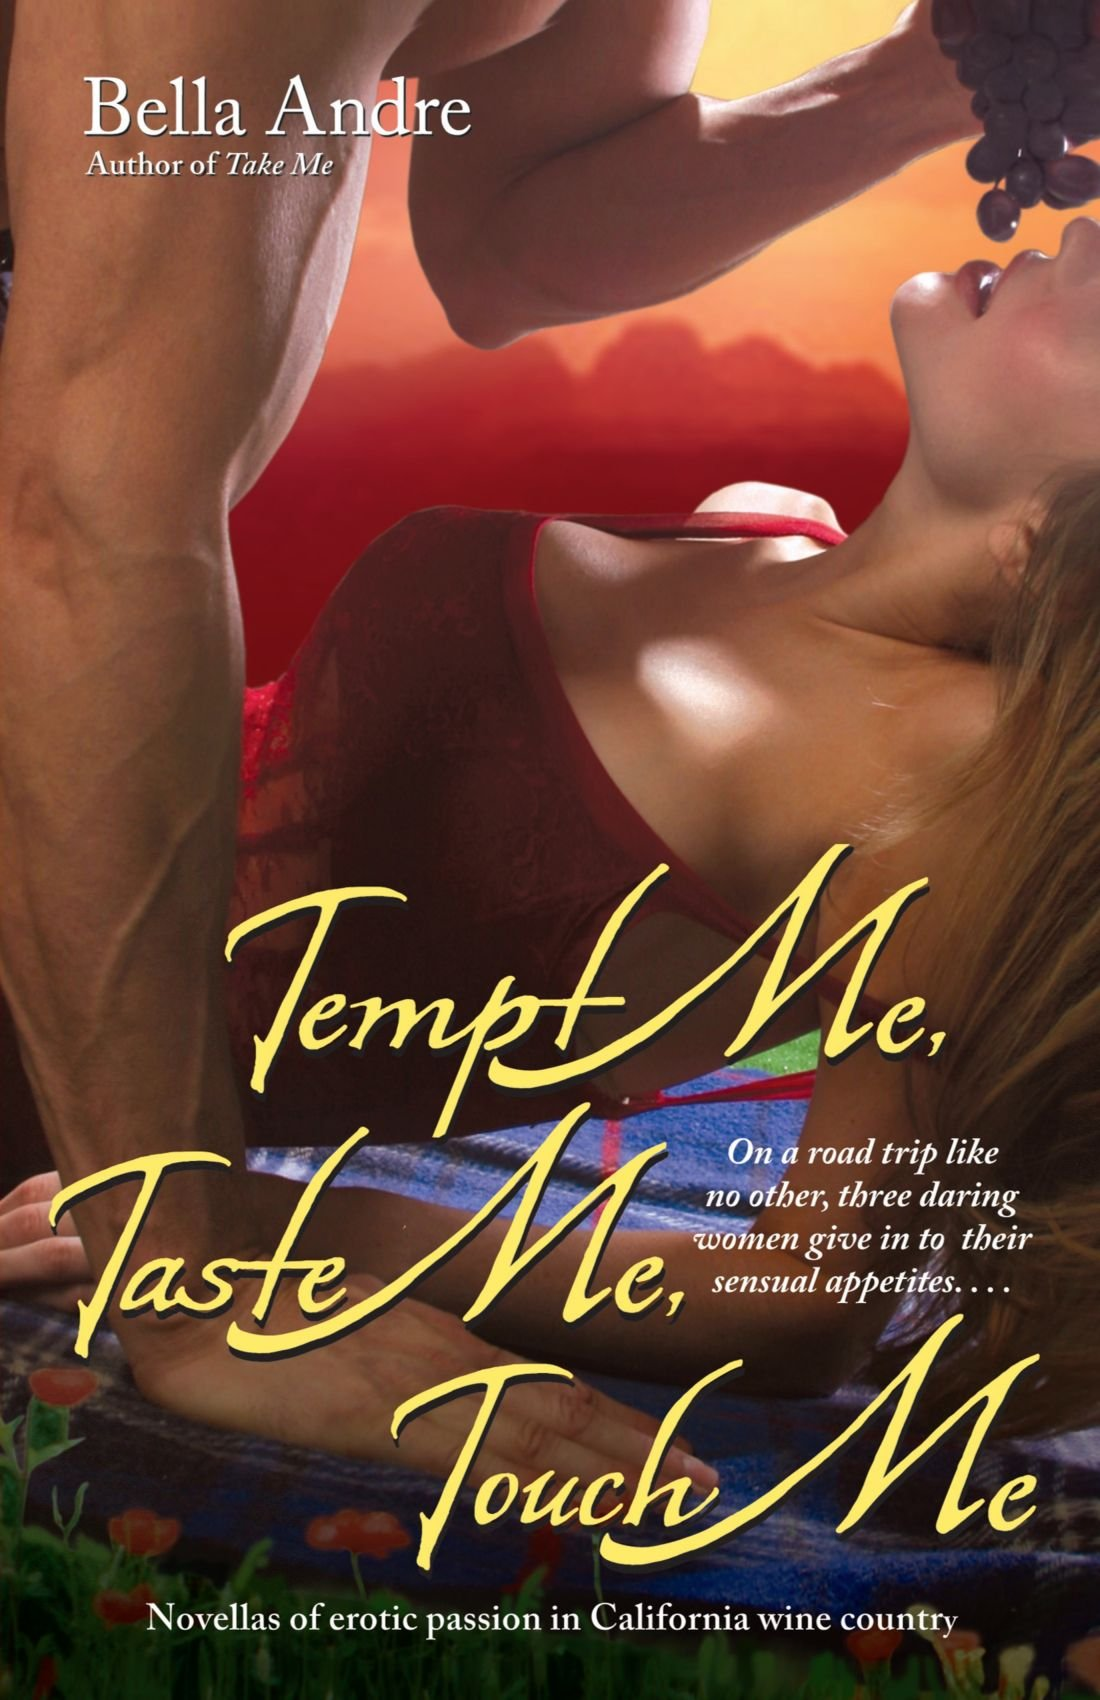 Other books by Isabelle Peterson